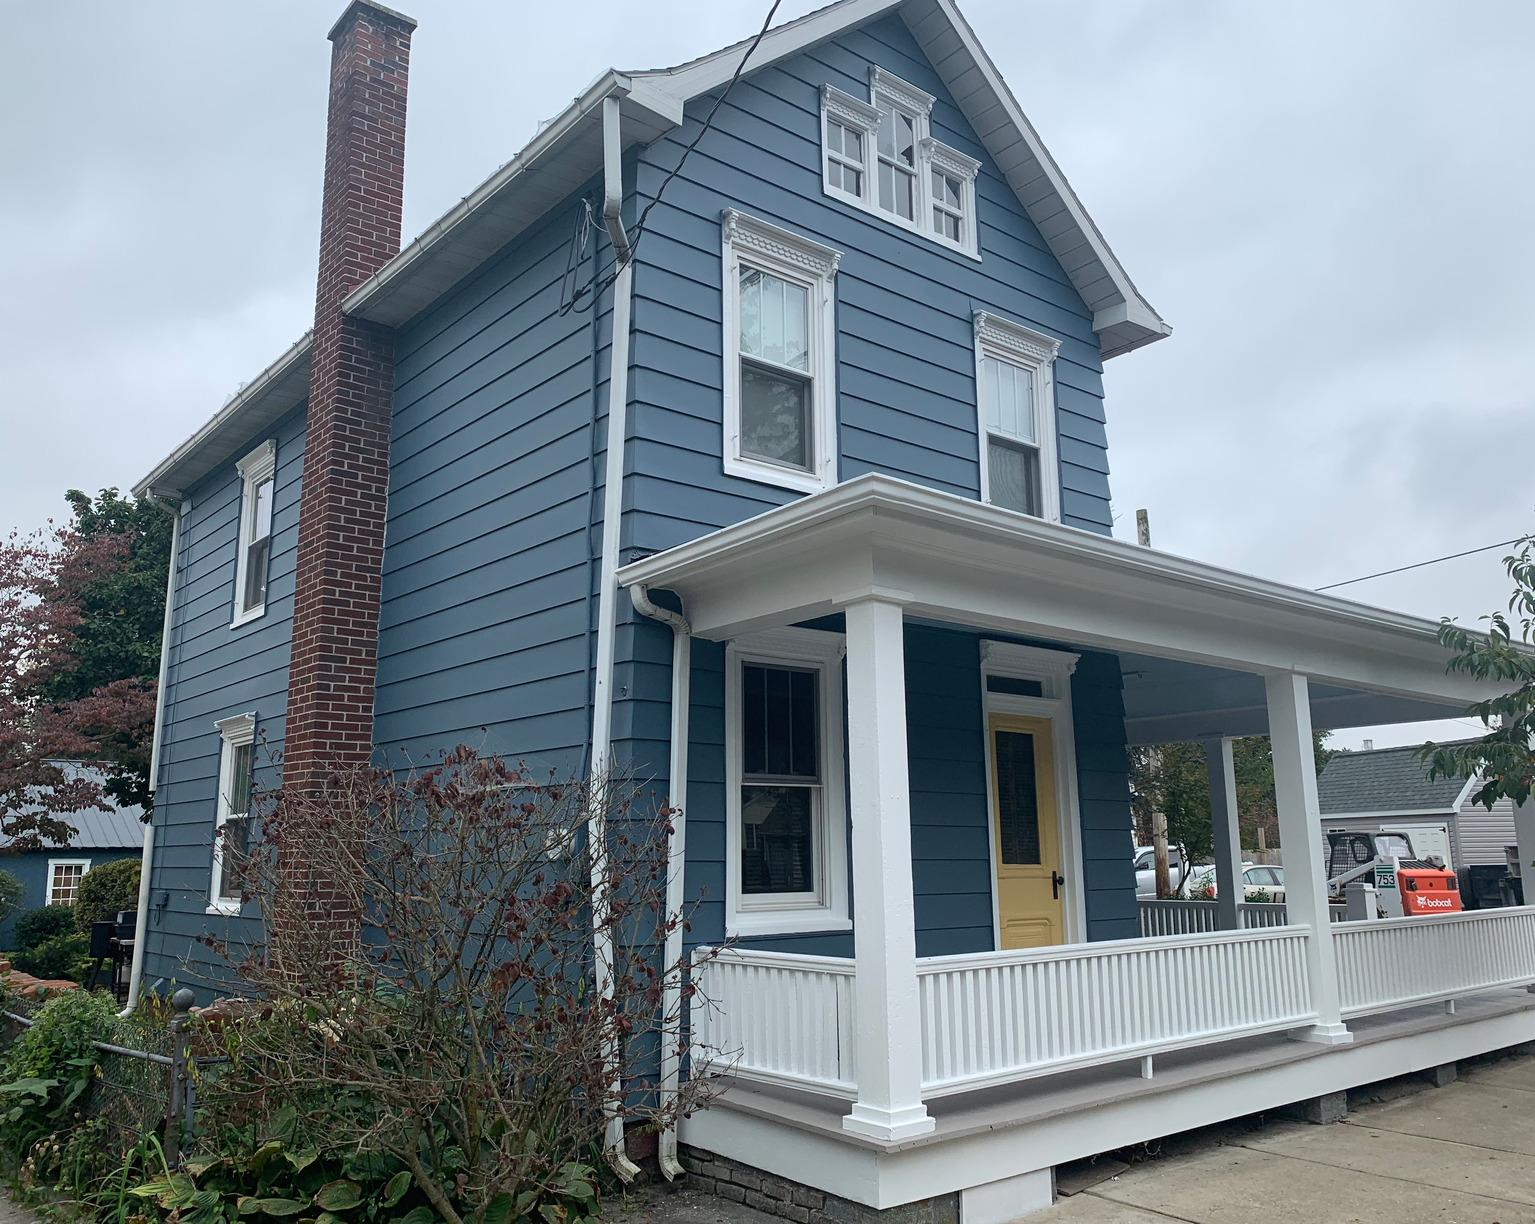 Historic Home Painted with Rhino Shield in Lititz, PA - After Photo